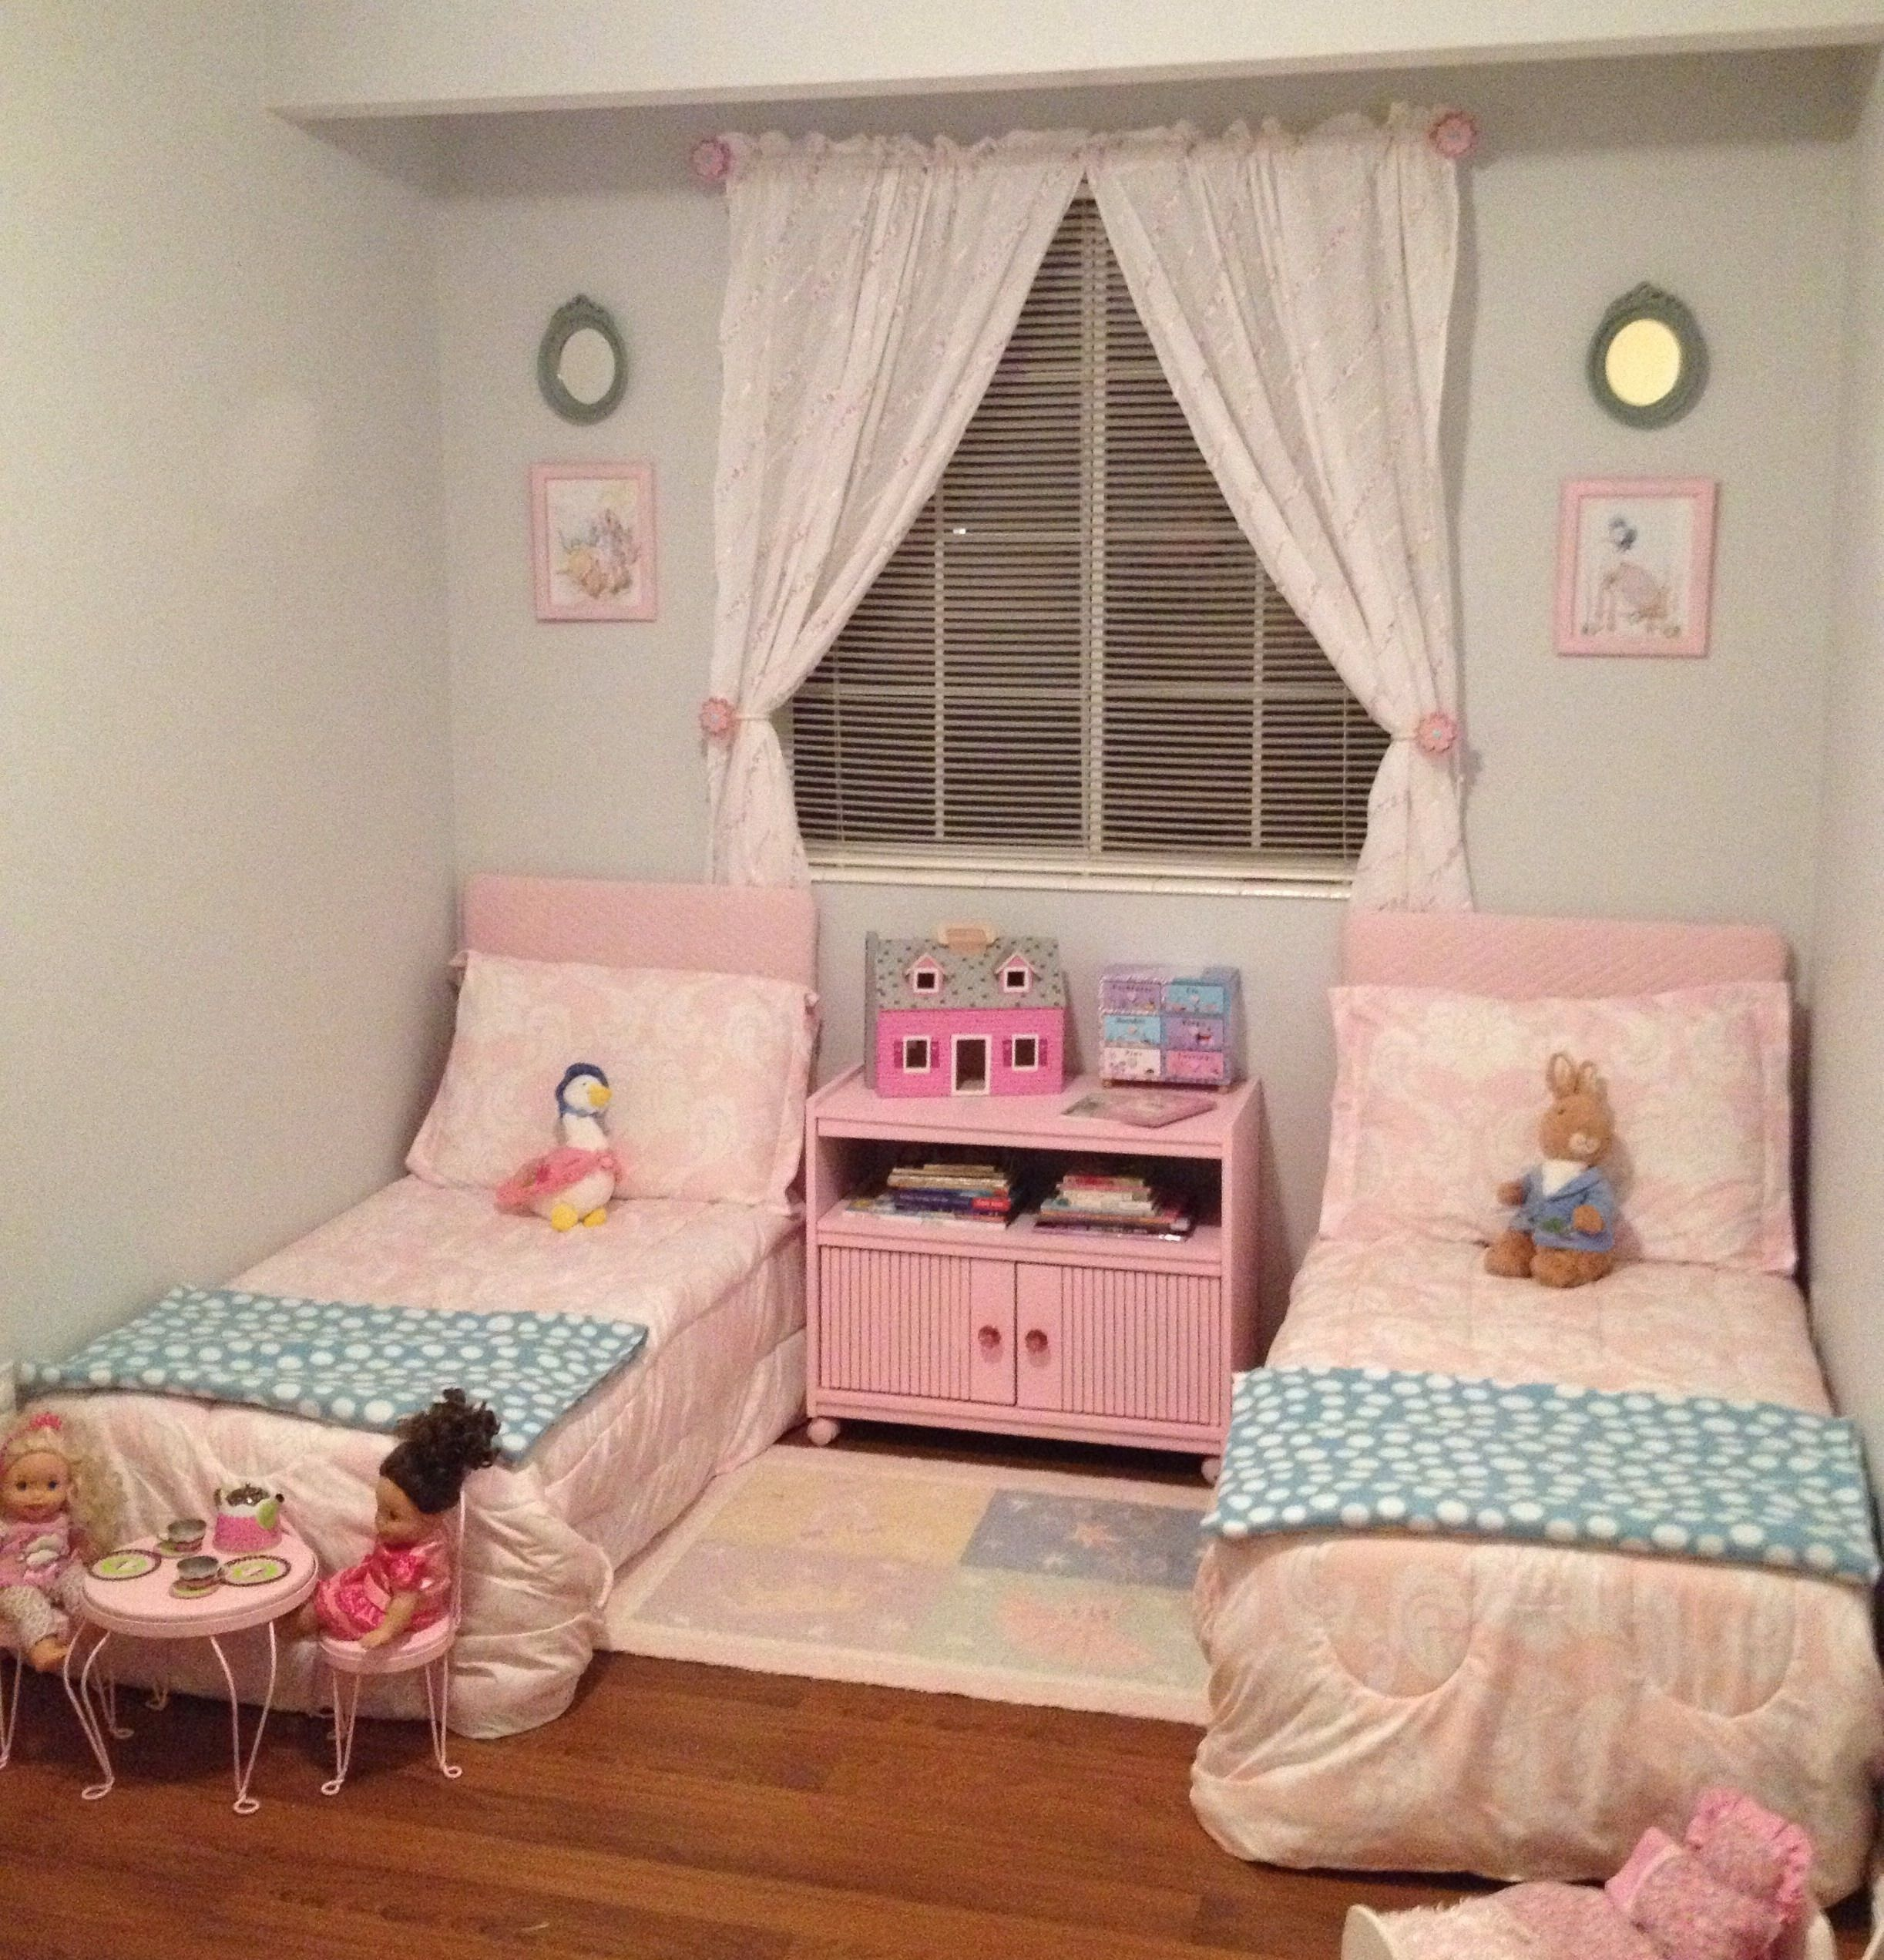 41 Classy Bedrooms Twin Beds Ideas For Small Rooms In 2020 Twin Girl Bedrooms Two Girls Bedrooms Shared Girls Bedroom